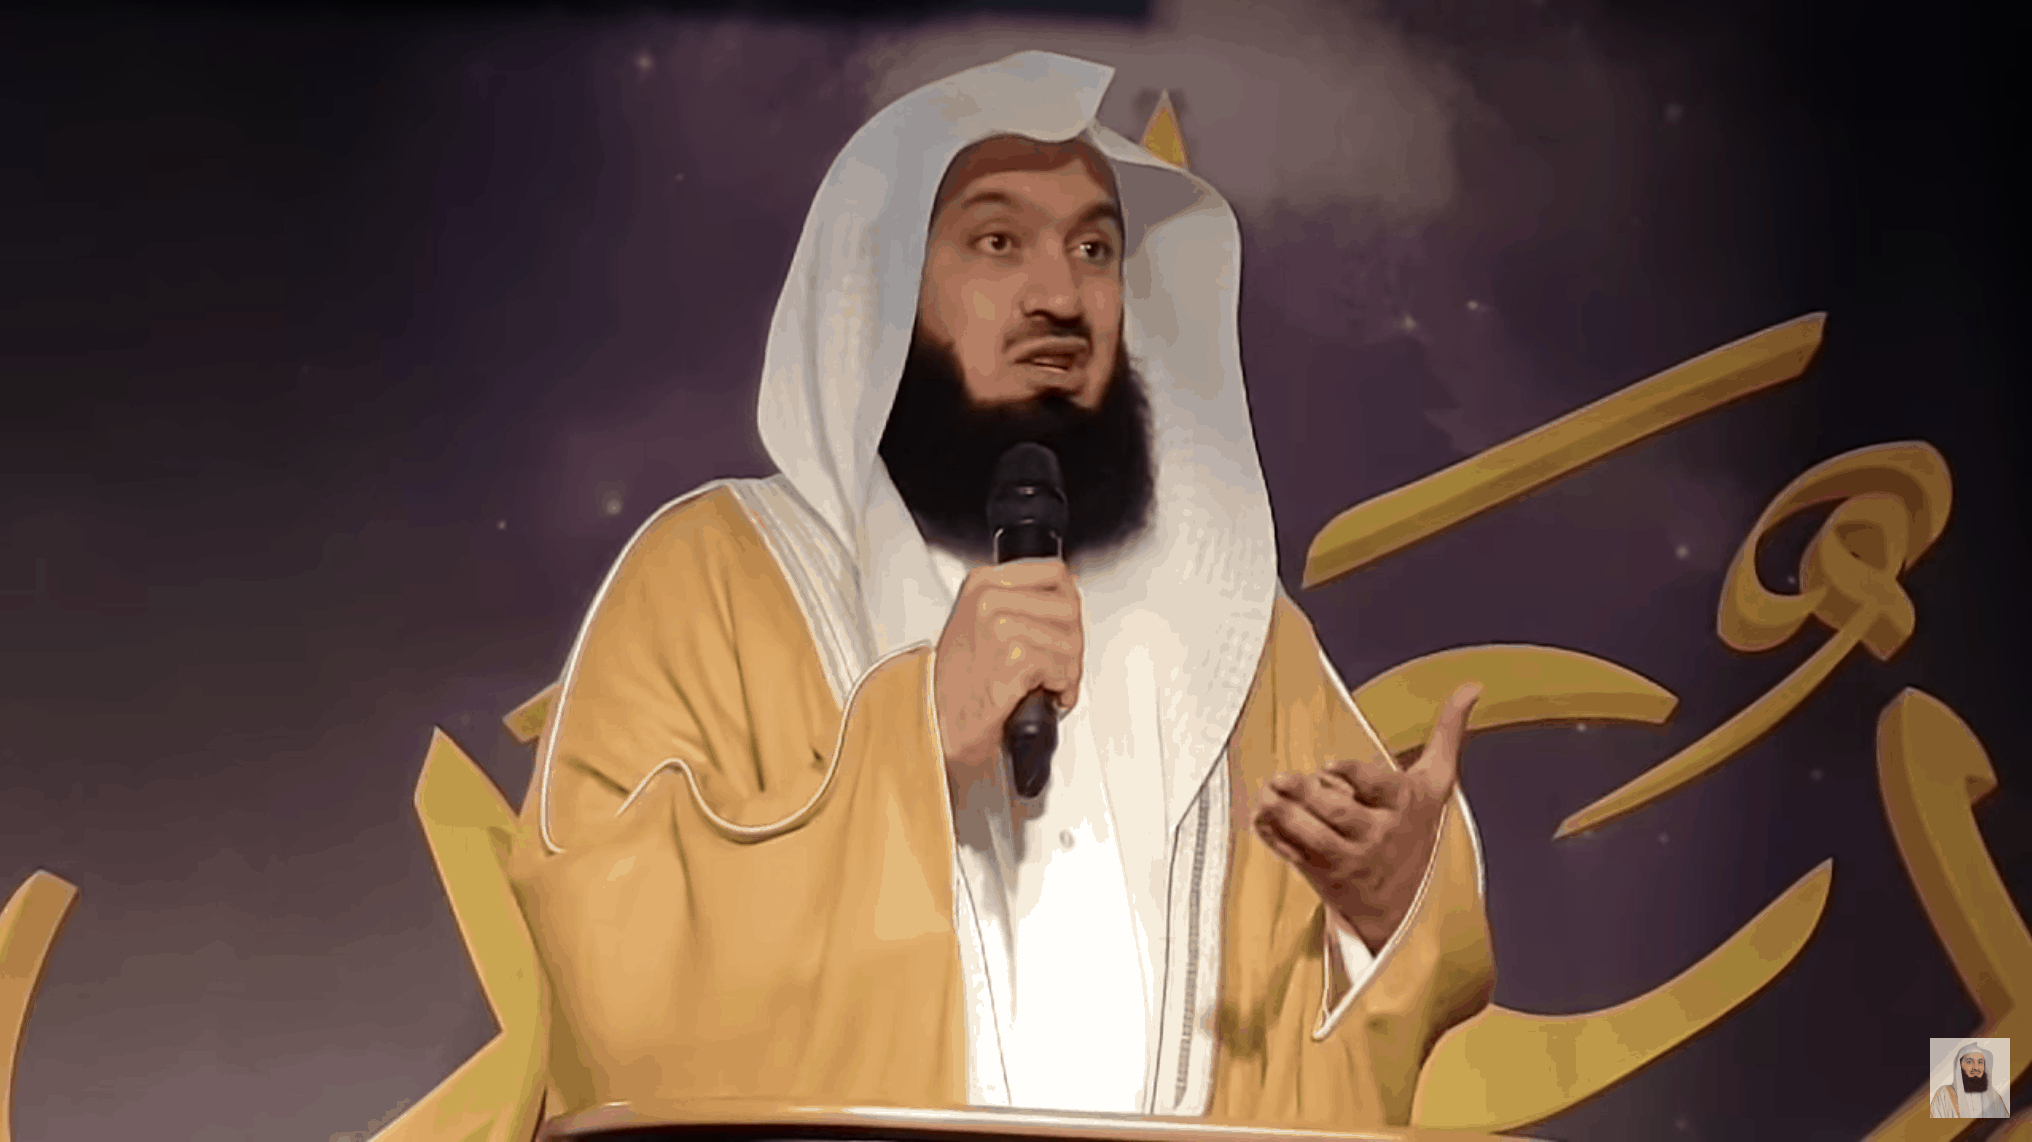 Ismail ibn Musa Menk – Destroying Others or Building Them?